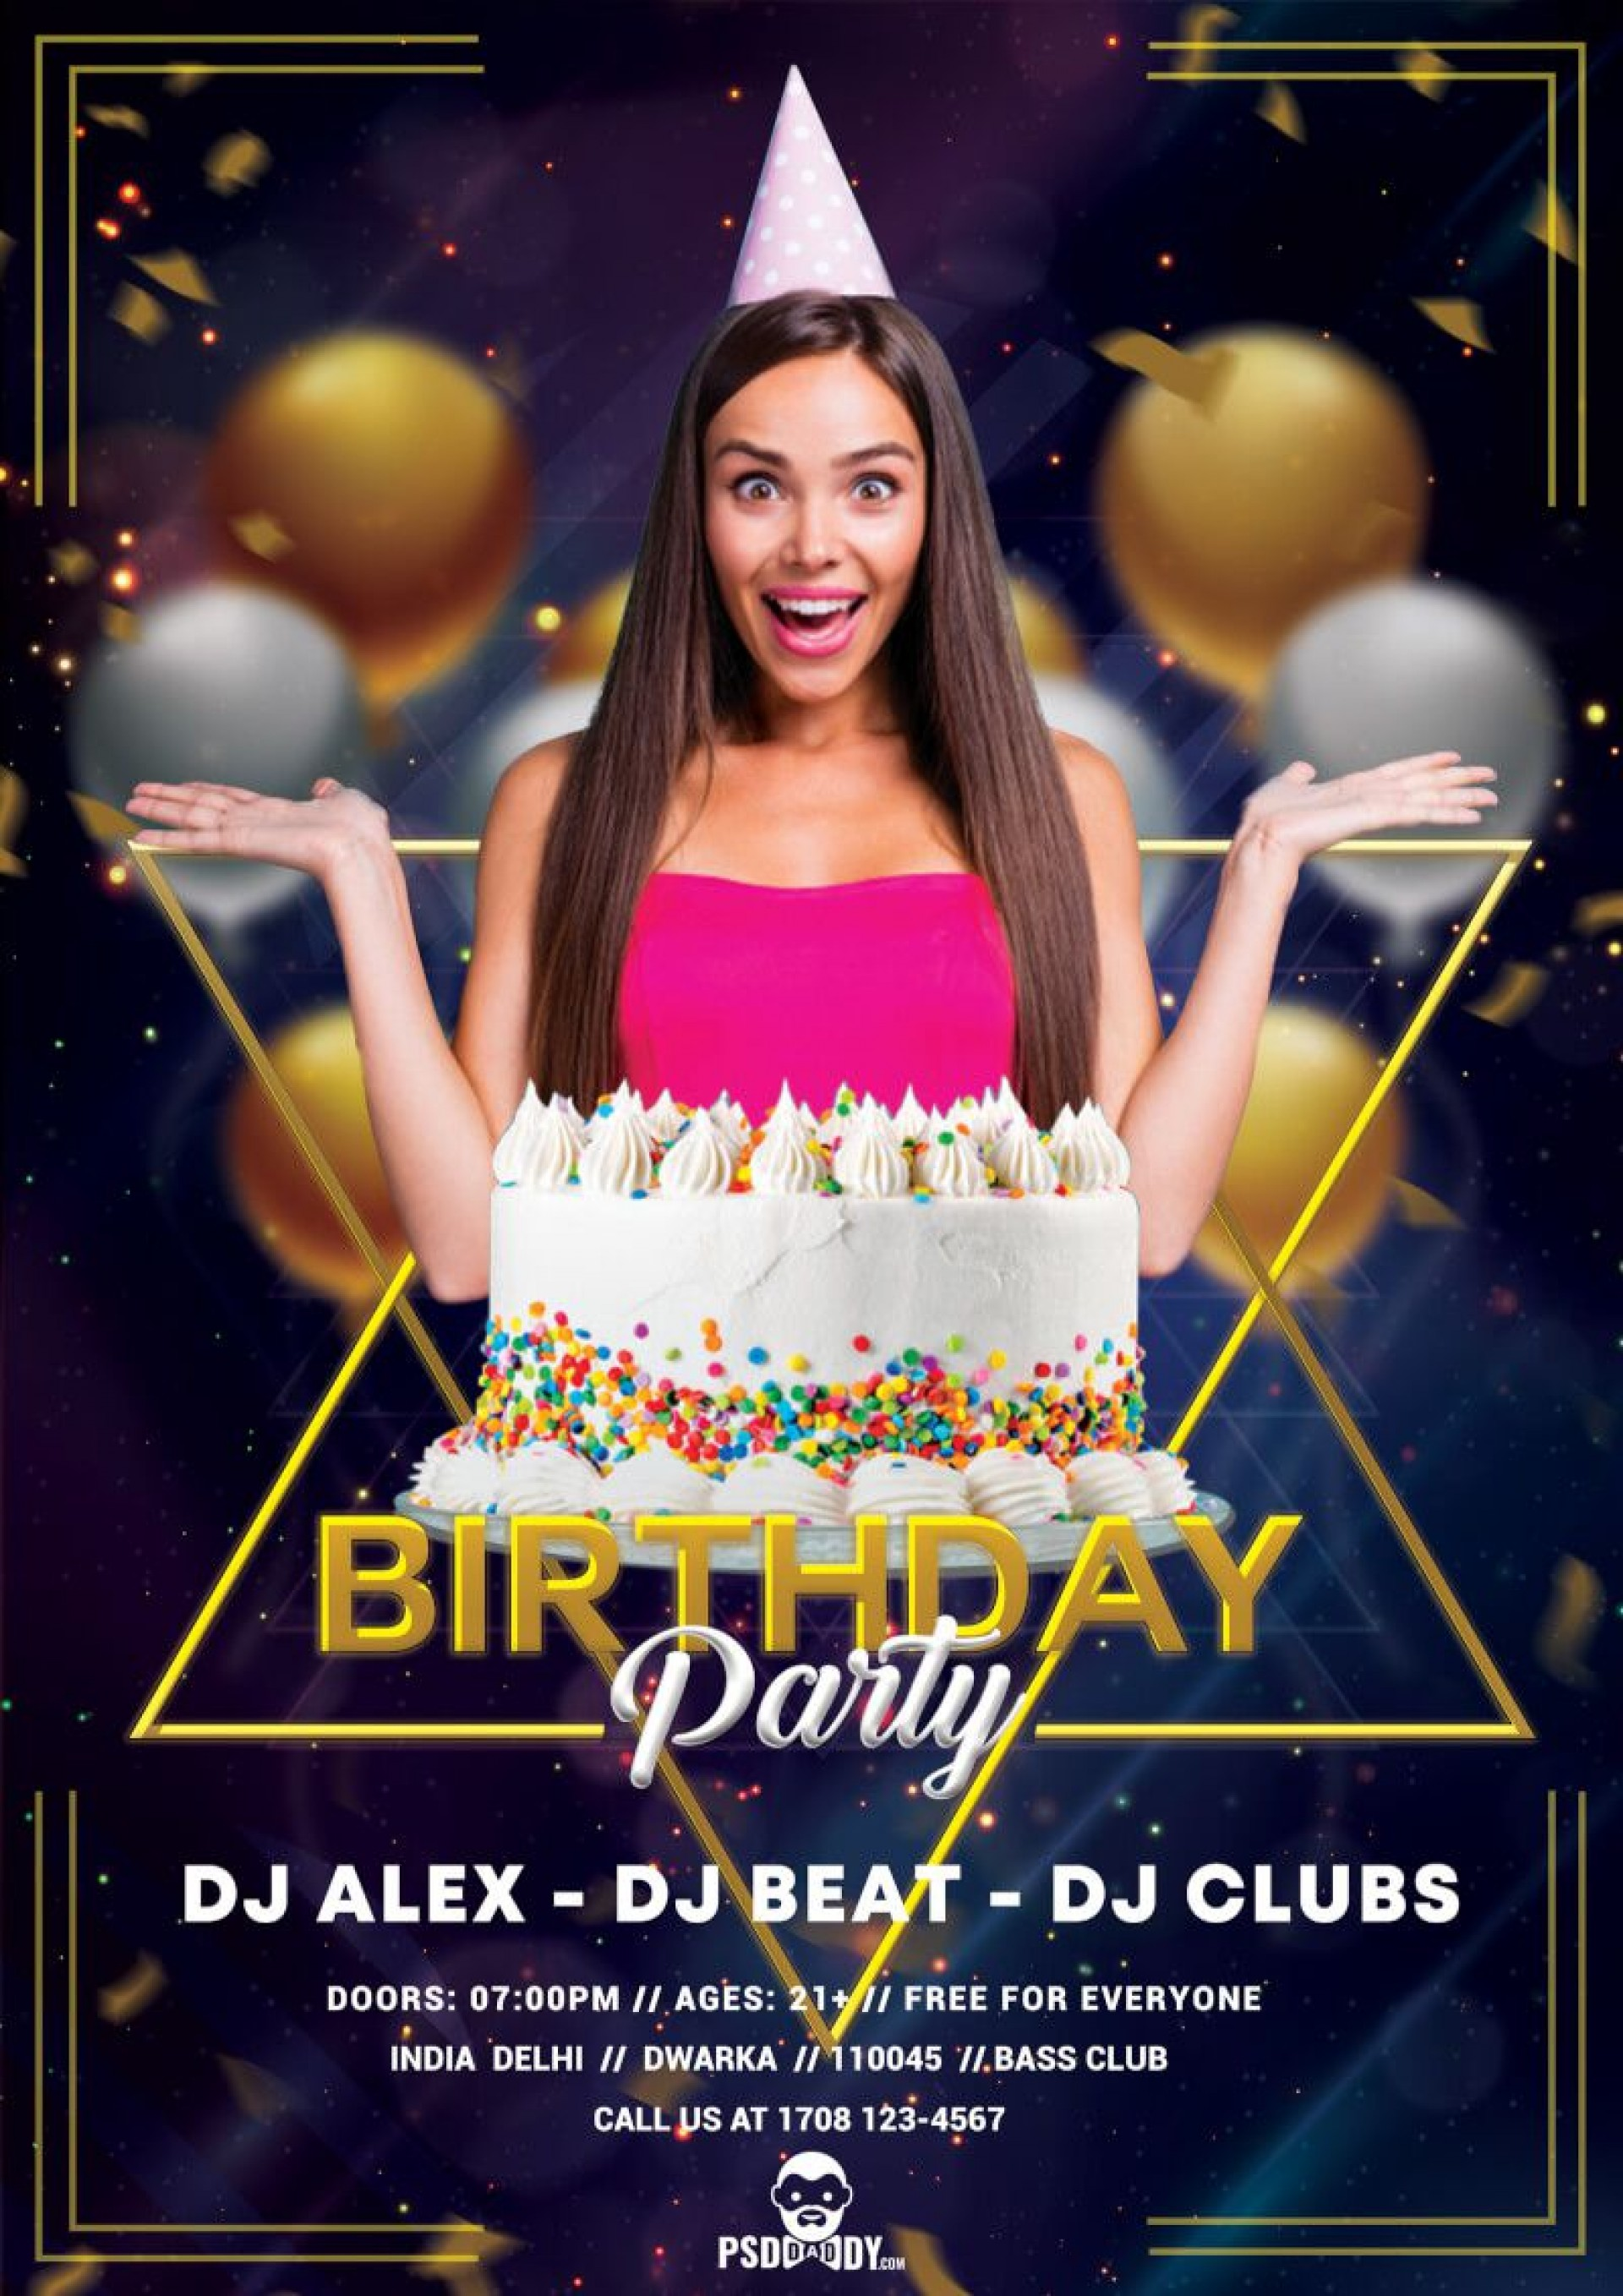 008 Astounding Birthday Flyer Template Psd Free Download High Resolution 1920